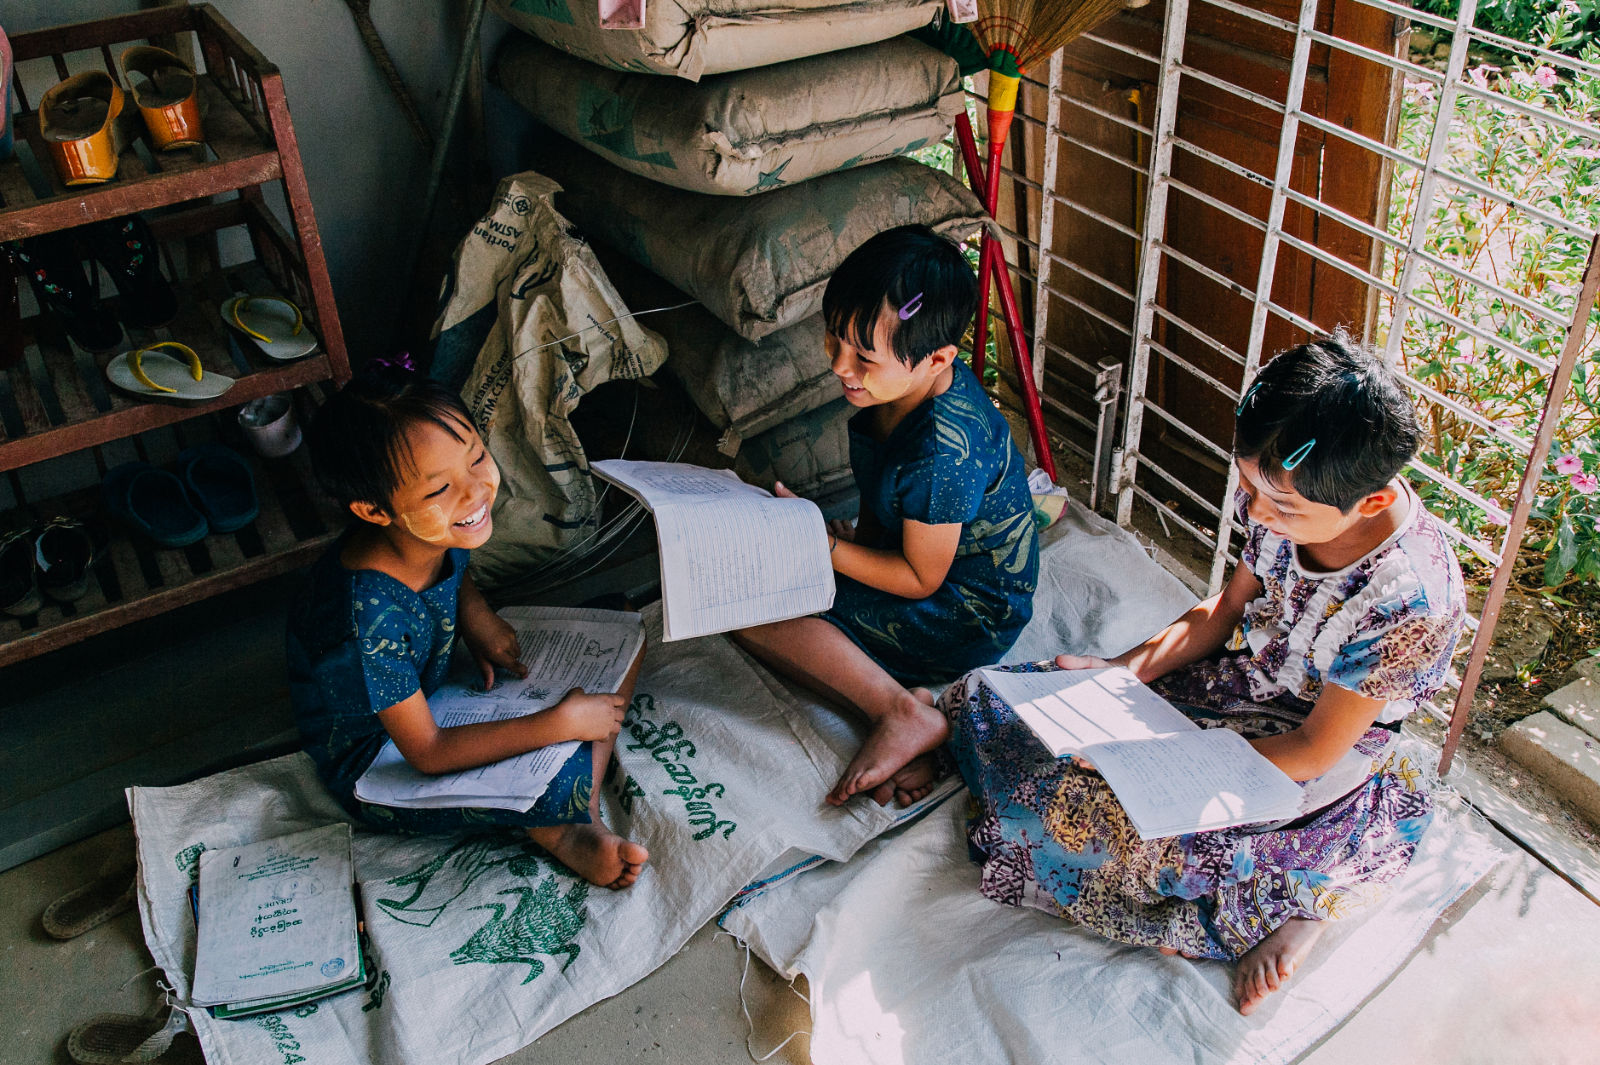 Three Girls studying together, this is why we work at Ending Child Sex Slavery through prevention